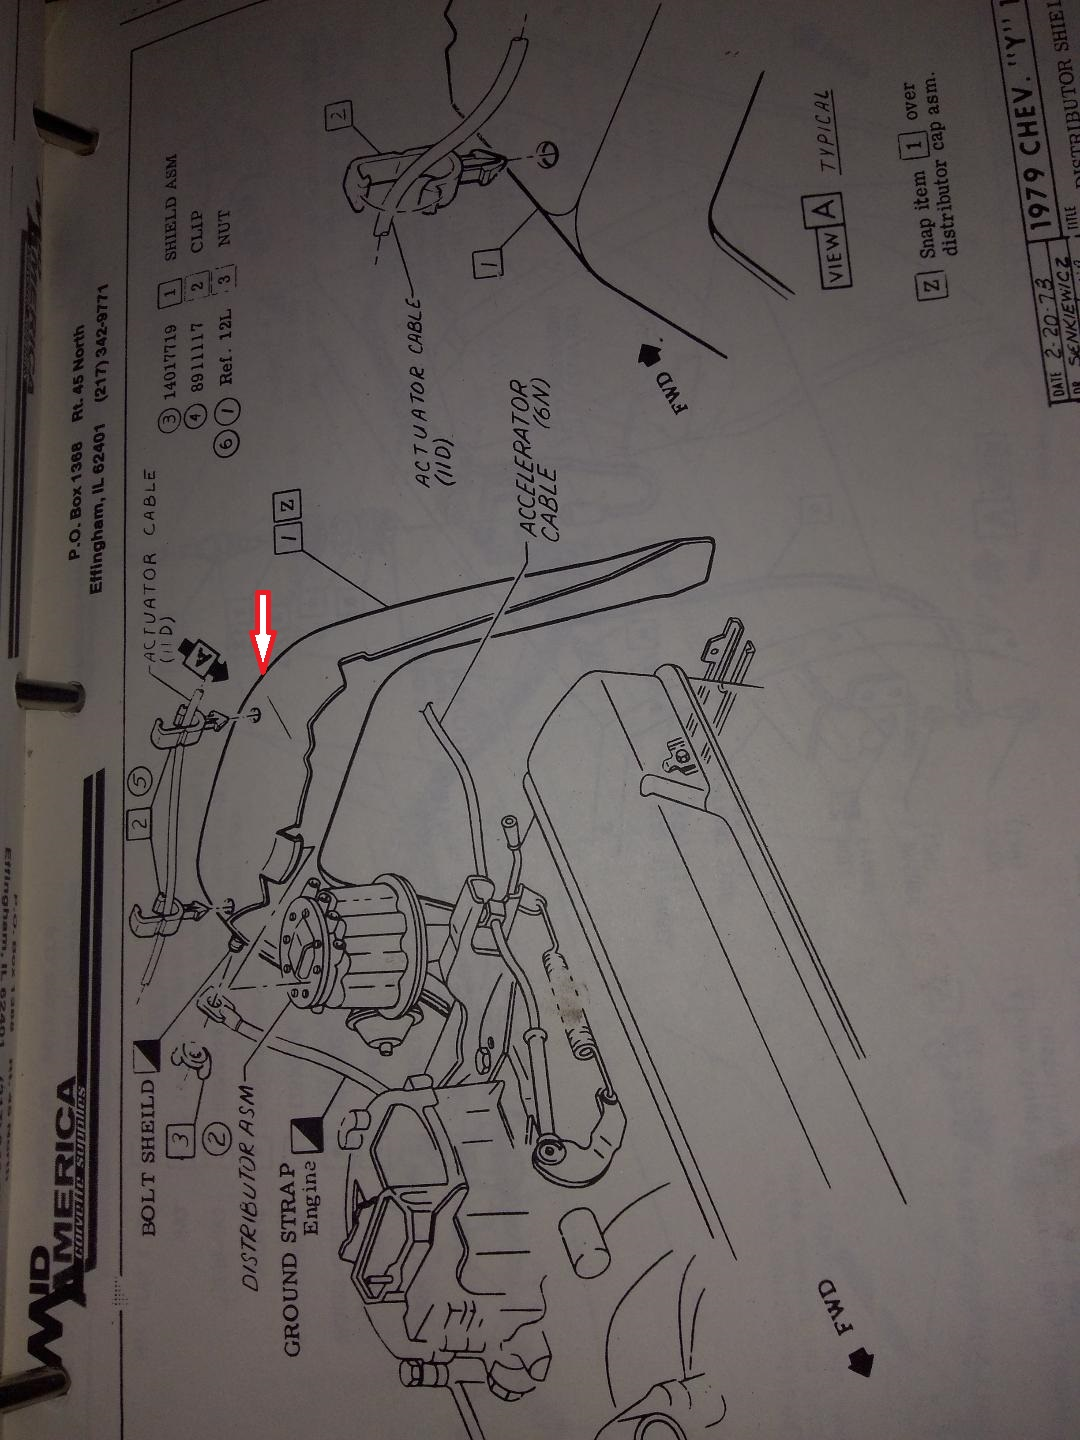 1979 Corvette Wiring Diagram Also Air Conditioning Wiring Diagrams